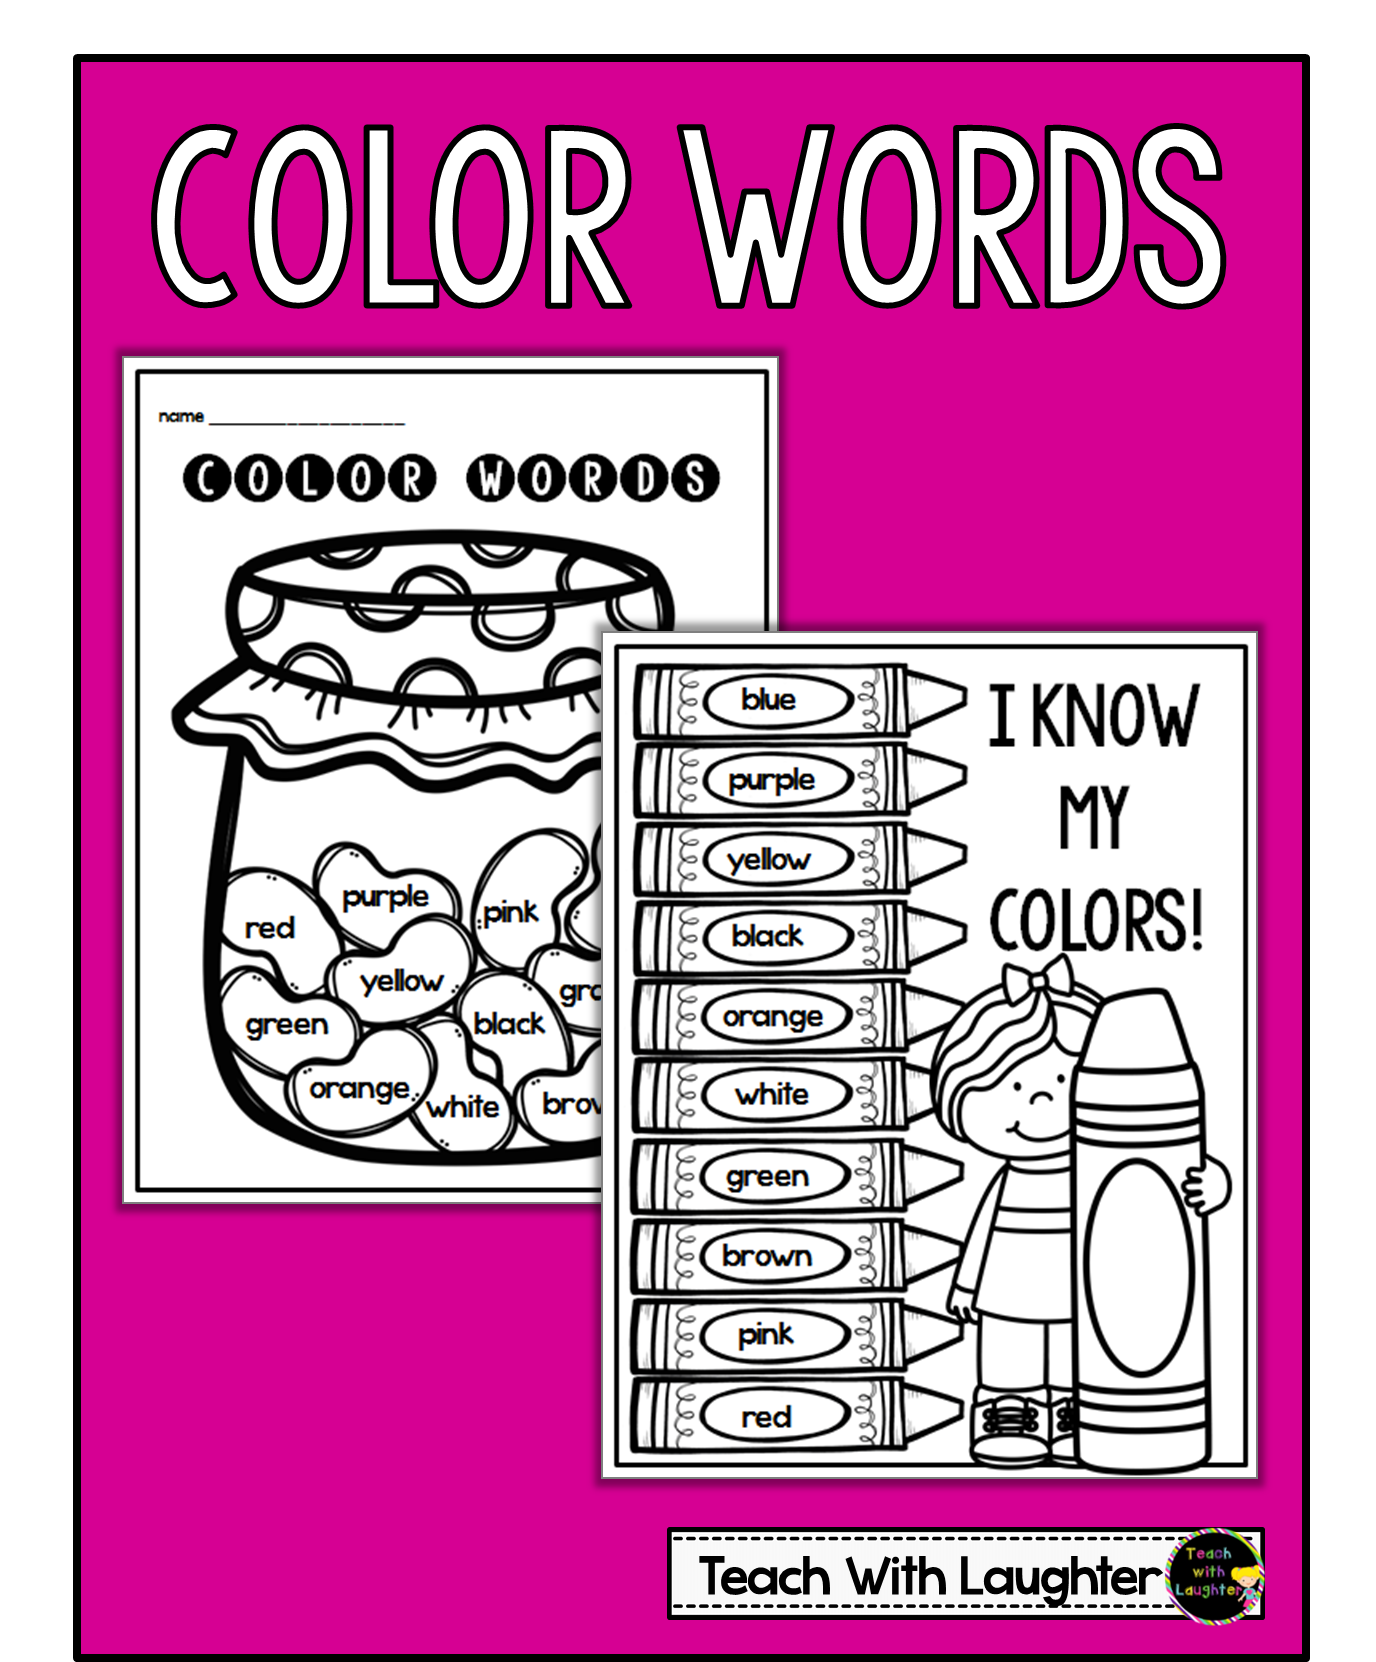 A Color Words Activity With Free Download